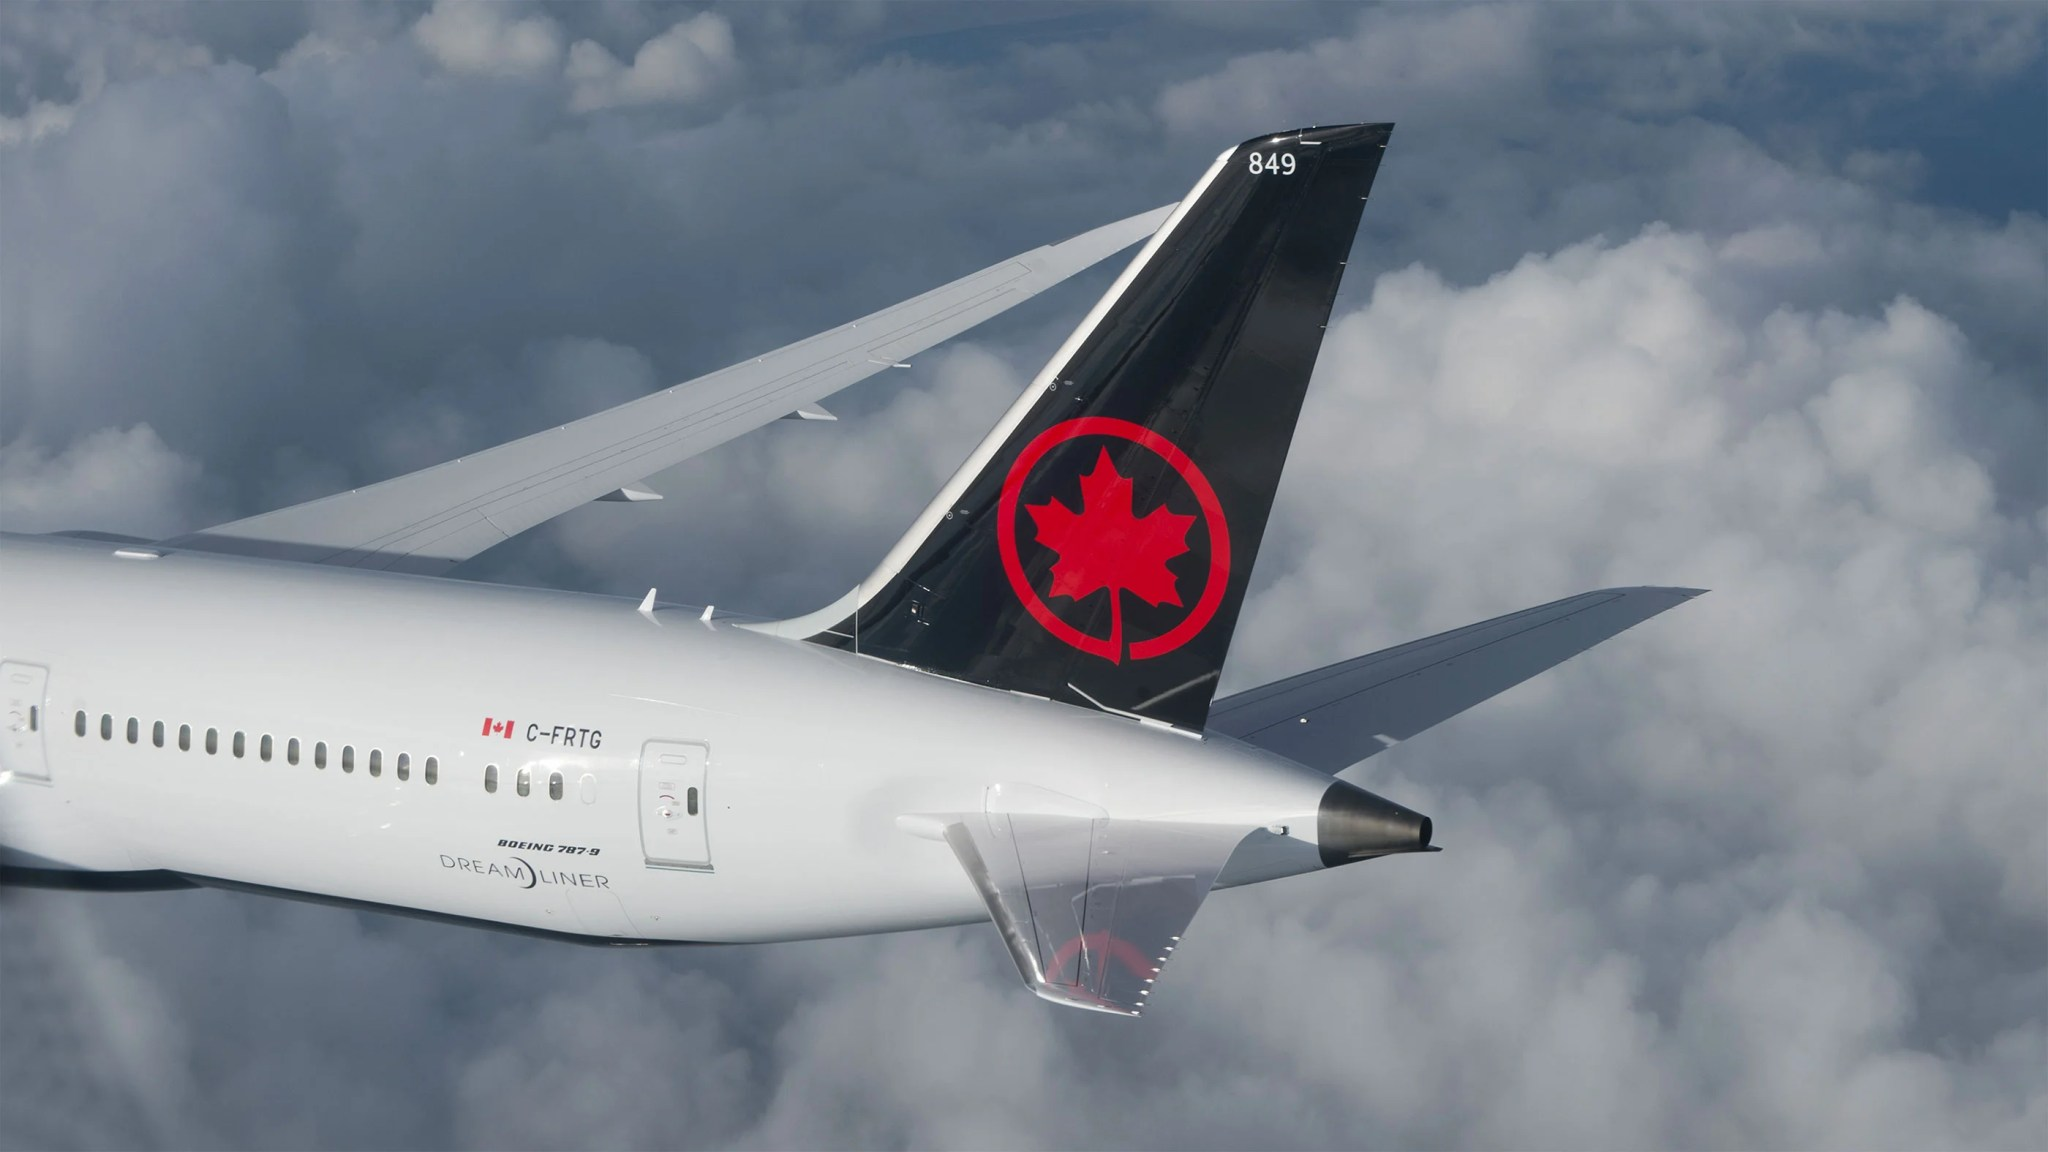 Earn 2,500 bonus Aeroplan miles after signing up for a new account